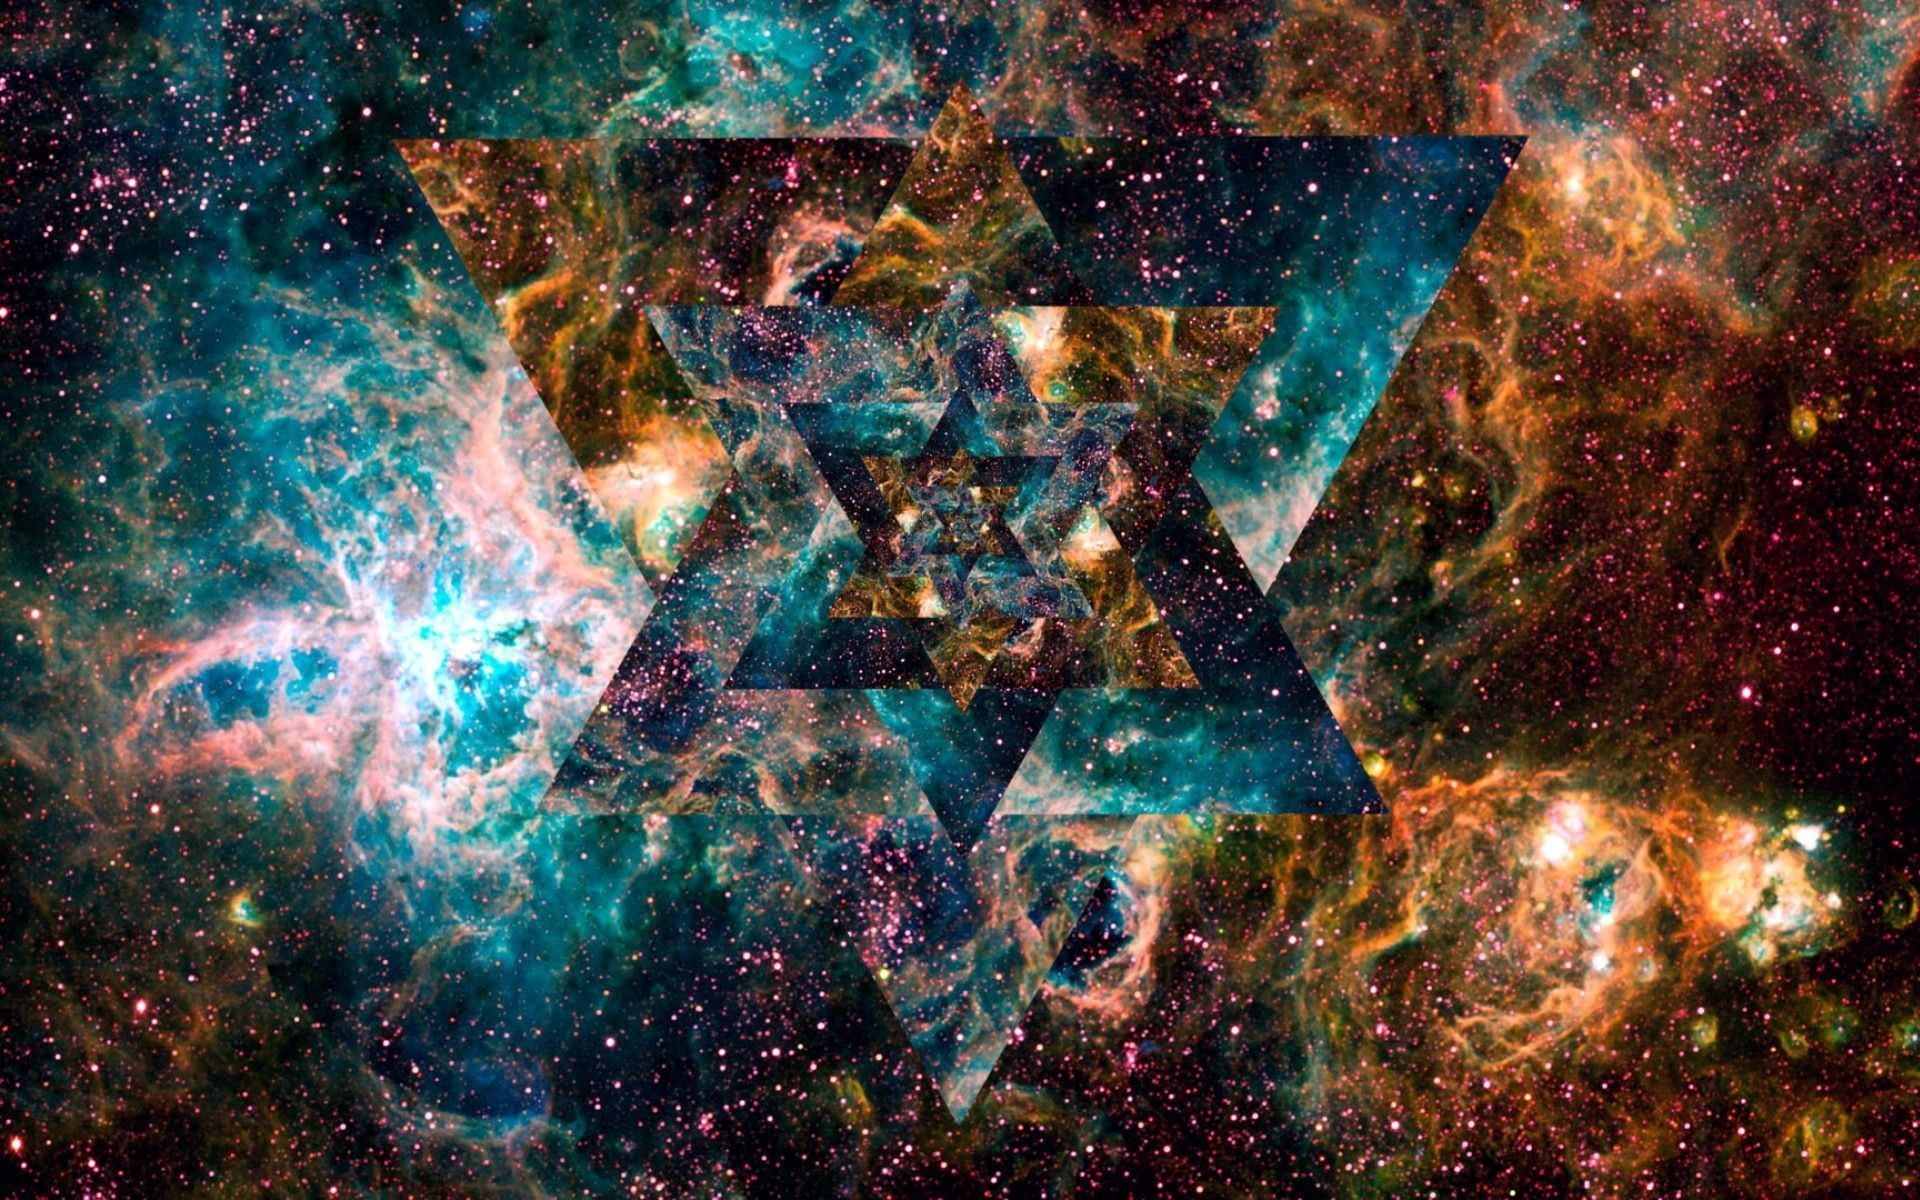 Trippy Space Wallpapers Wallpaper 1920×1080 Trippy Space Backgrounds (43  Wallpapers)   Adorable